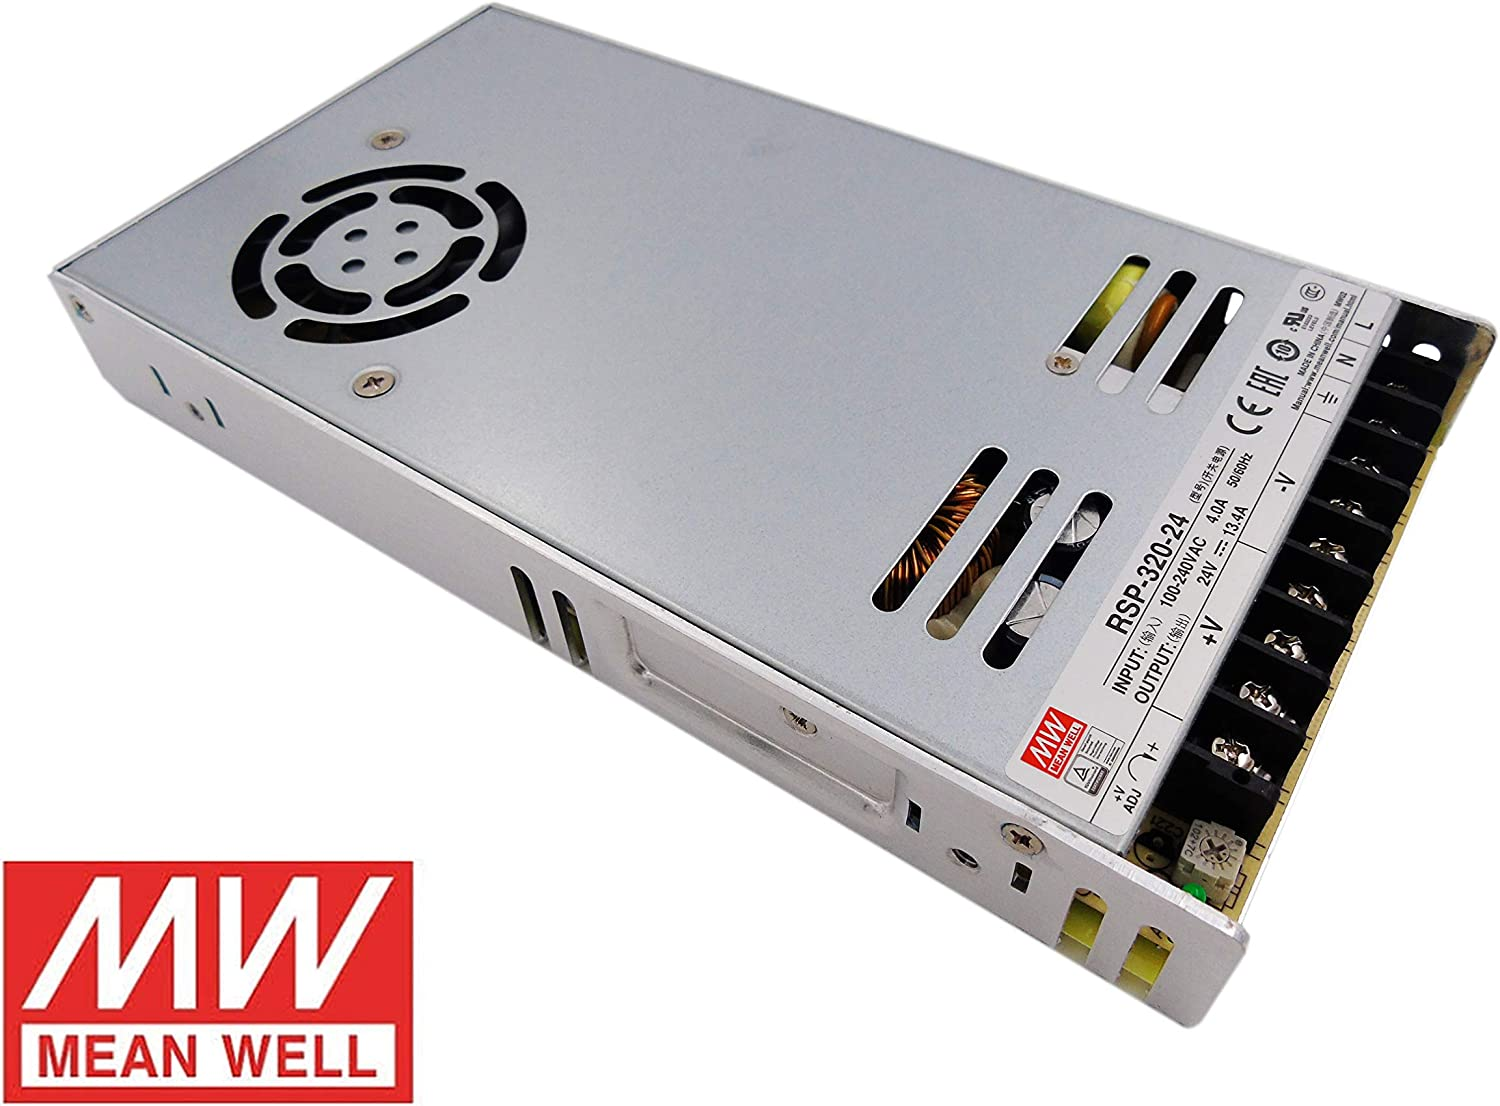 MeanWell Fuente de alimentacion 320W 24V 13.4A Enclosed RSP-320-24 Power Supply AC/DC